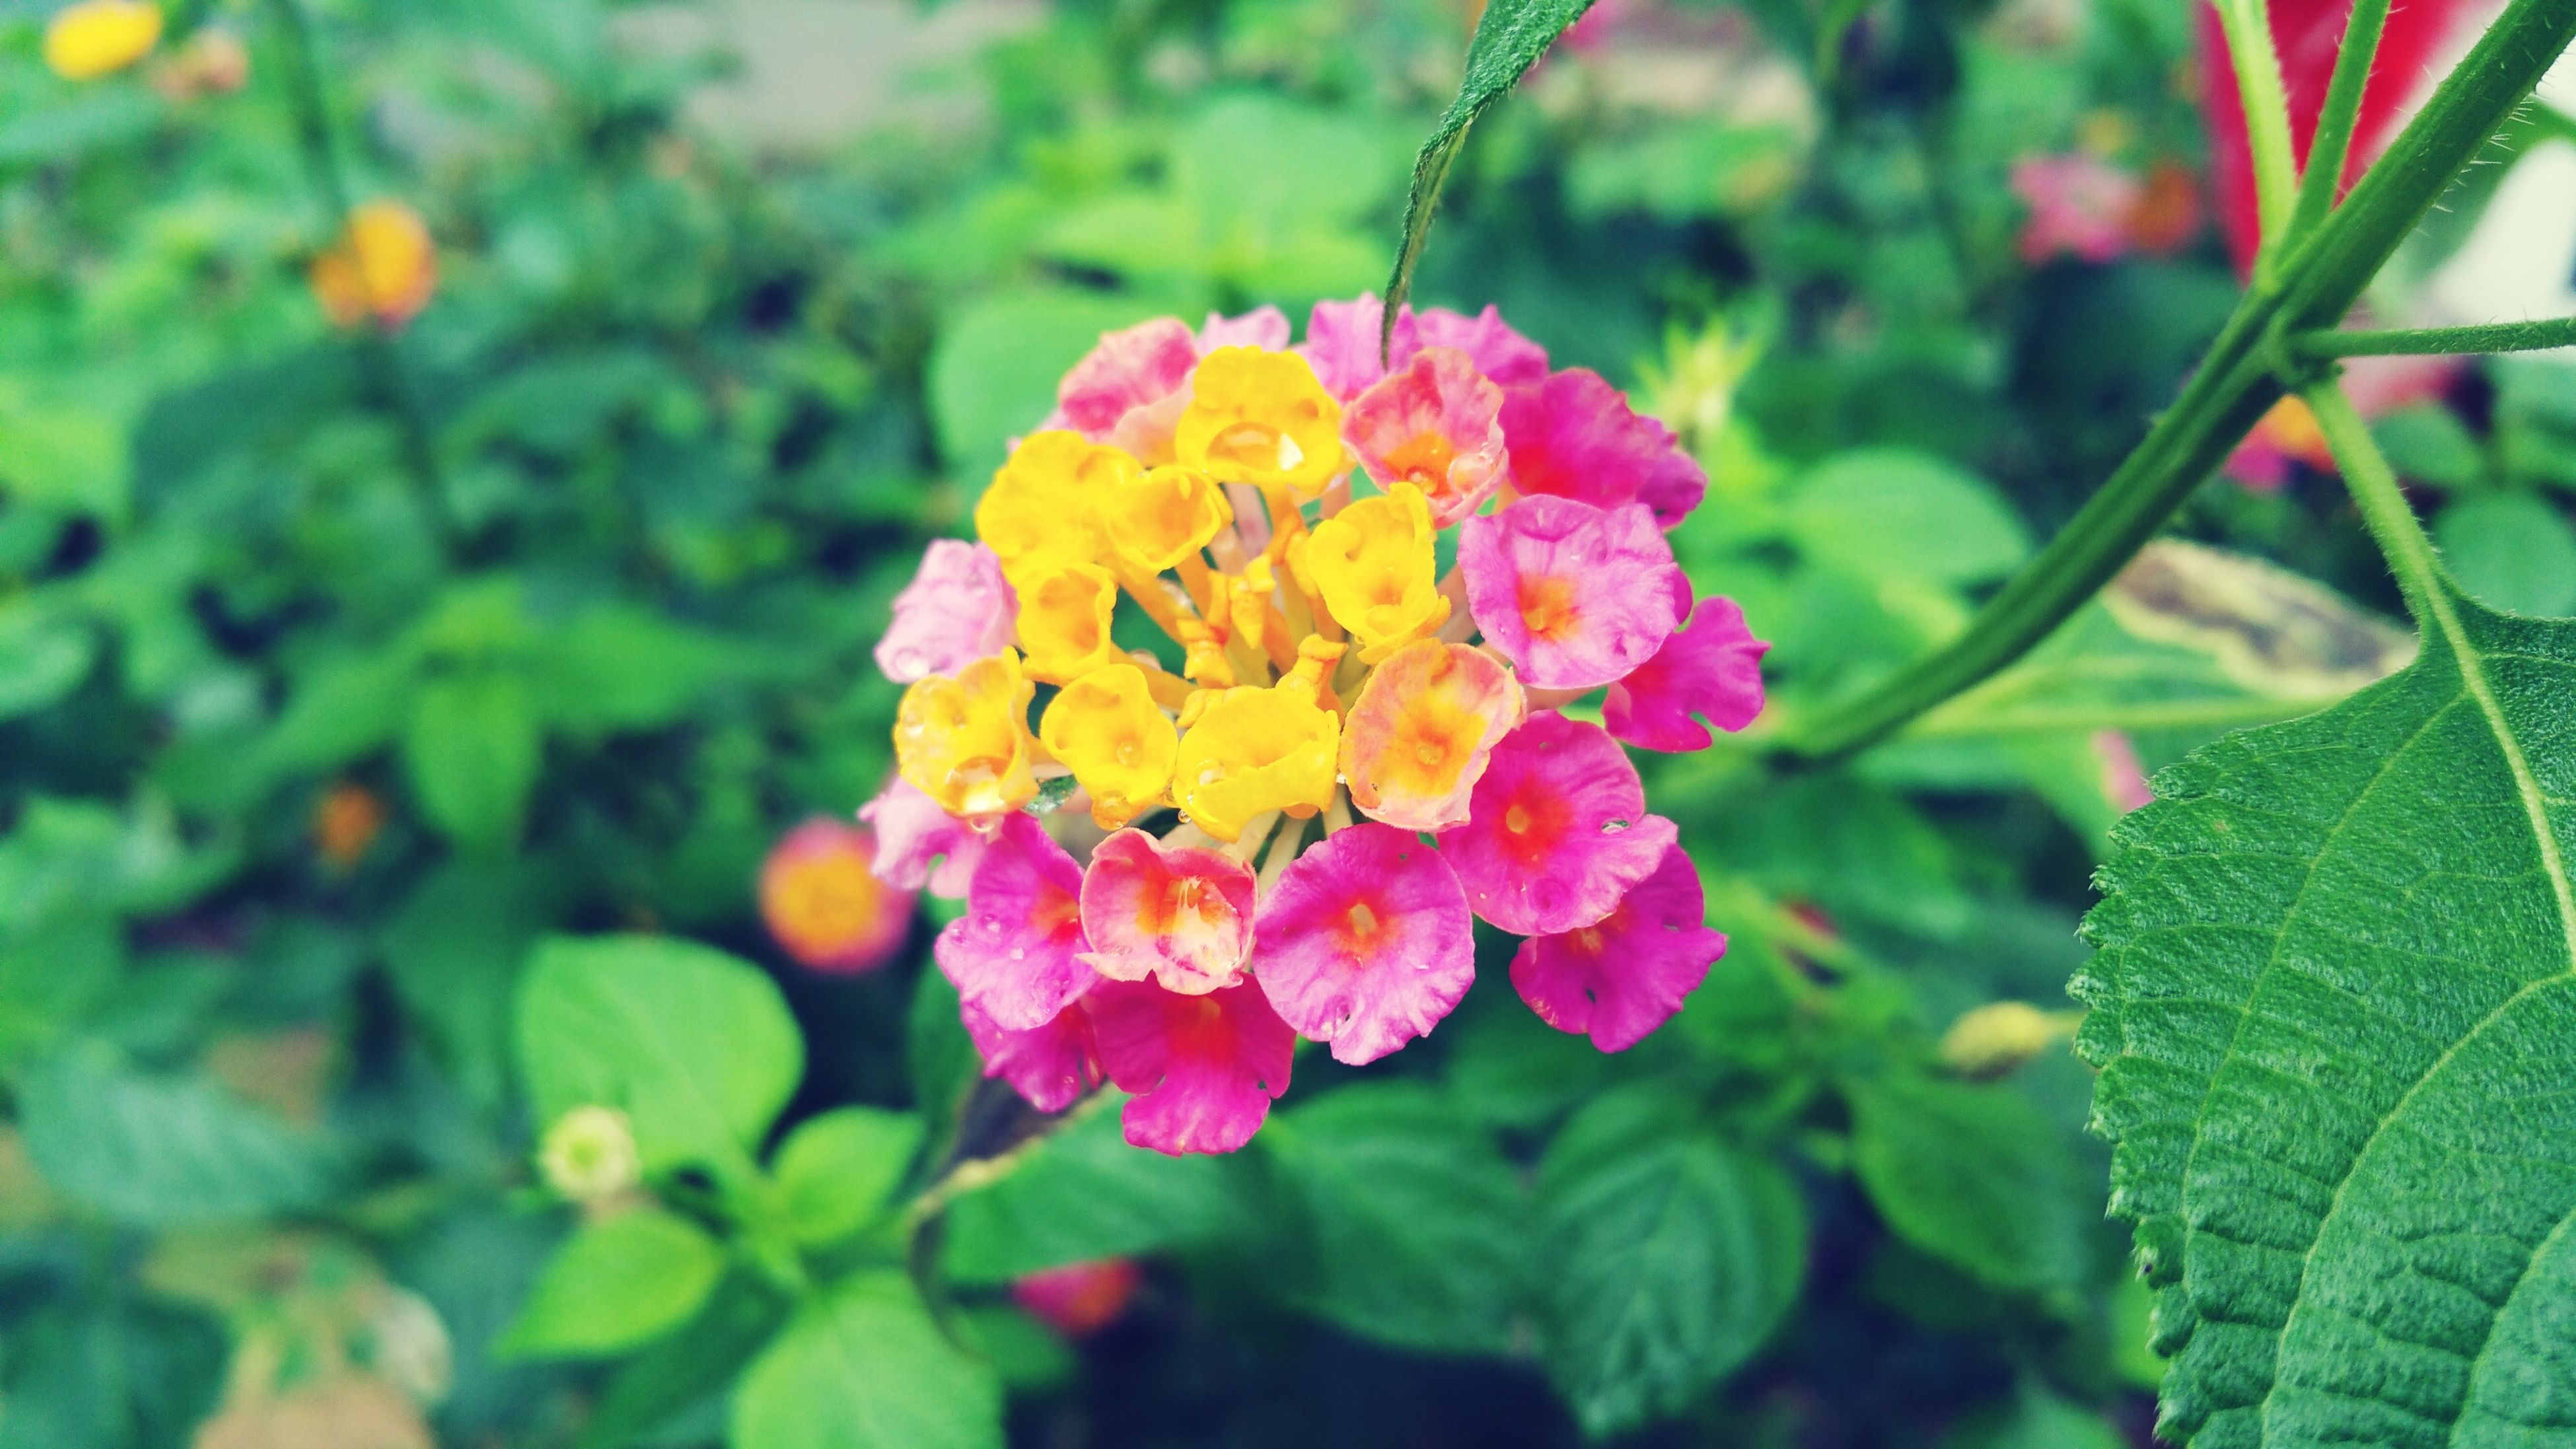 flower, freshness, fragility, petal, growth, beauty in nature, pink color, flower head, focus on foreground, nature, close-up, blooming, leaf, plant, in bloom, park - man made space, springtime, blossom, green color, day